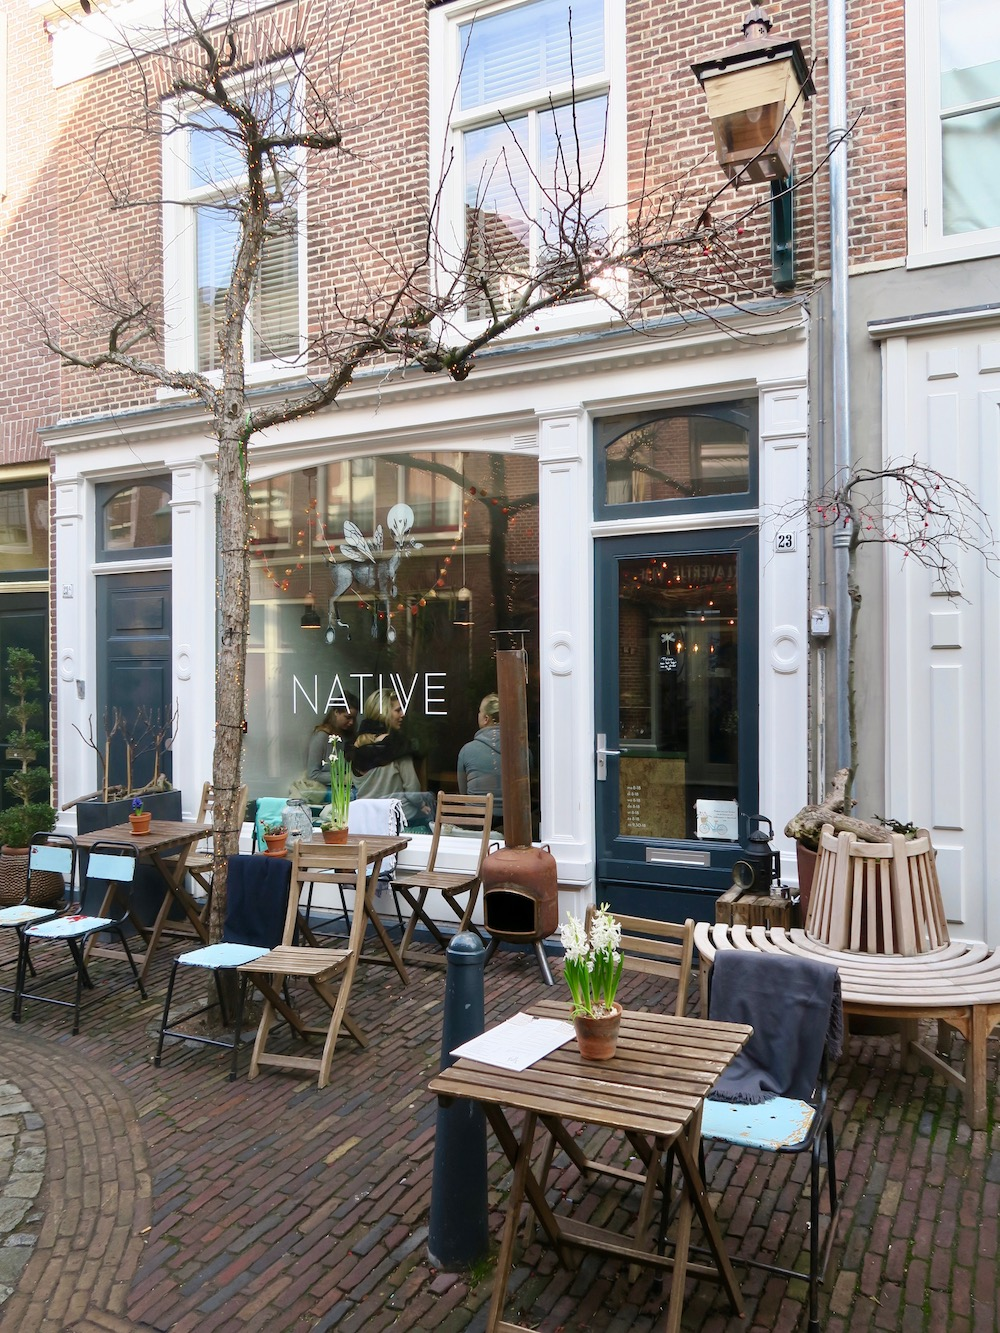 Terrace from Native Haarlem |curlytraveller.com